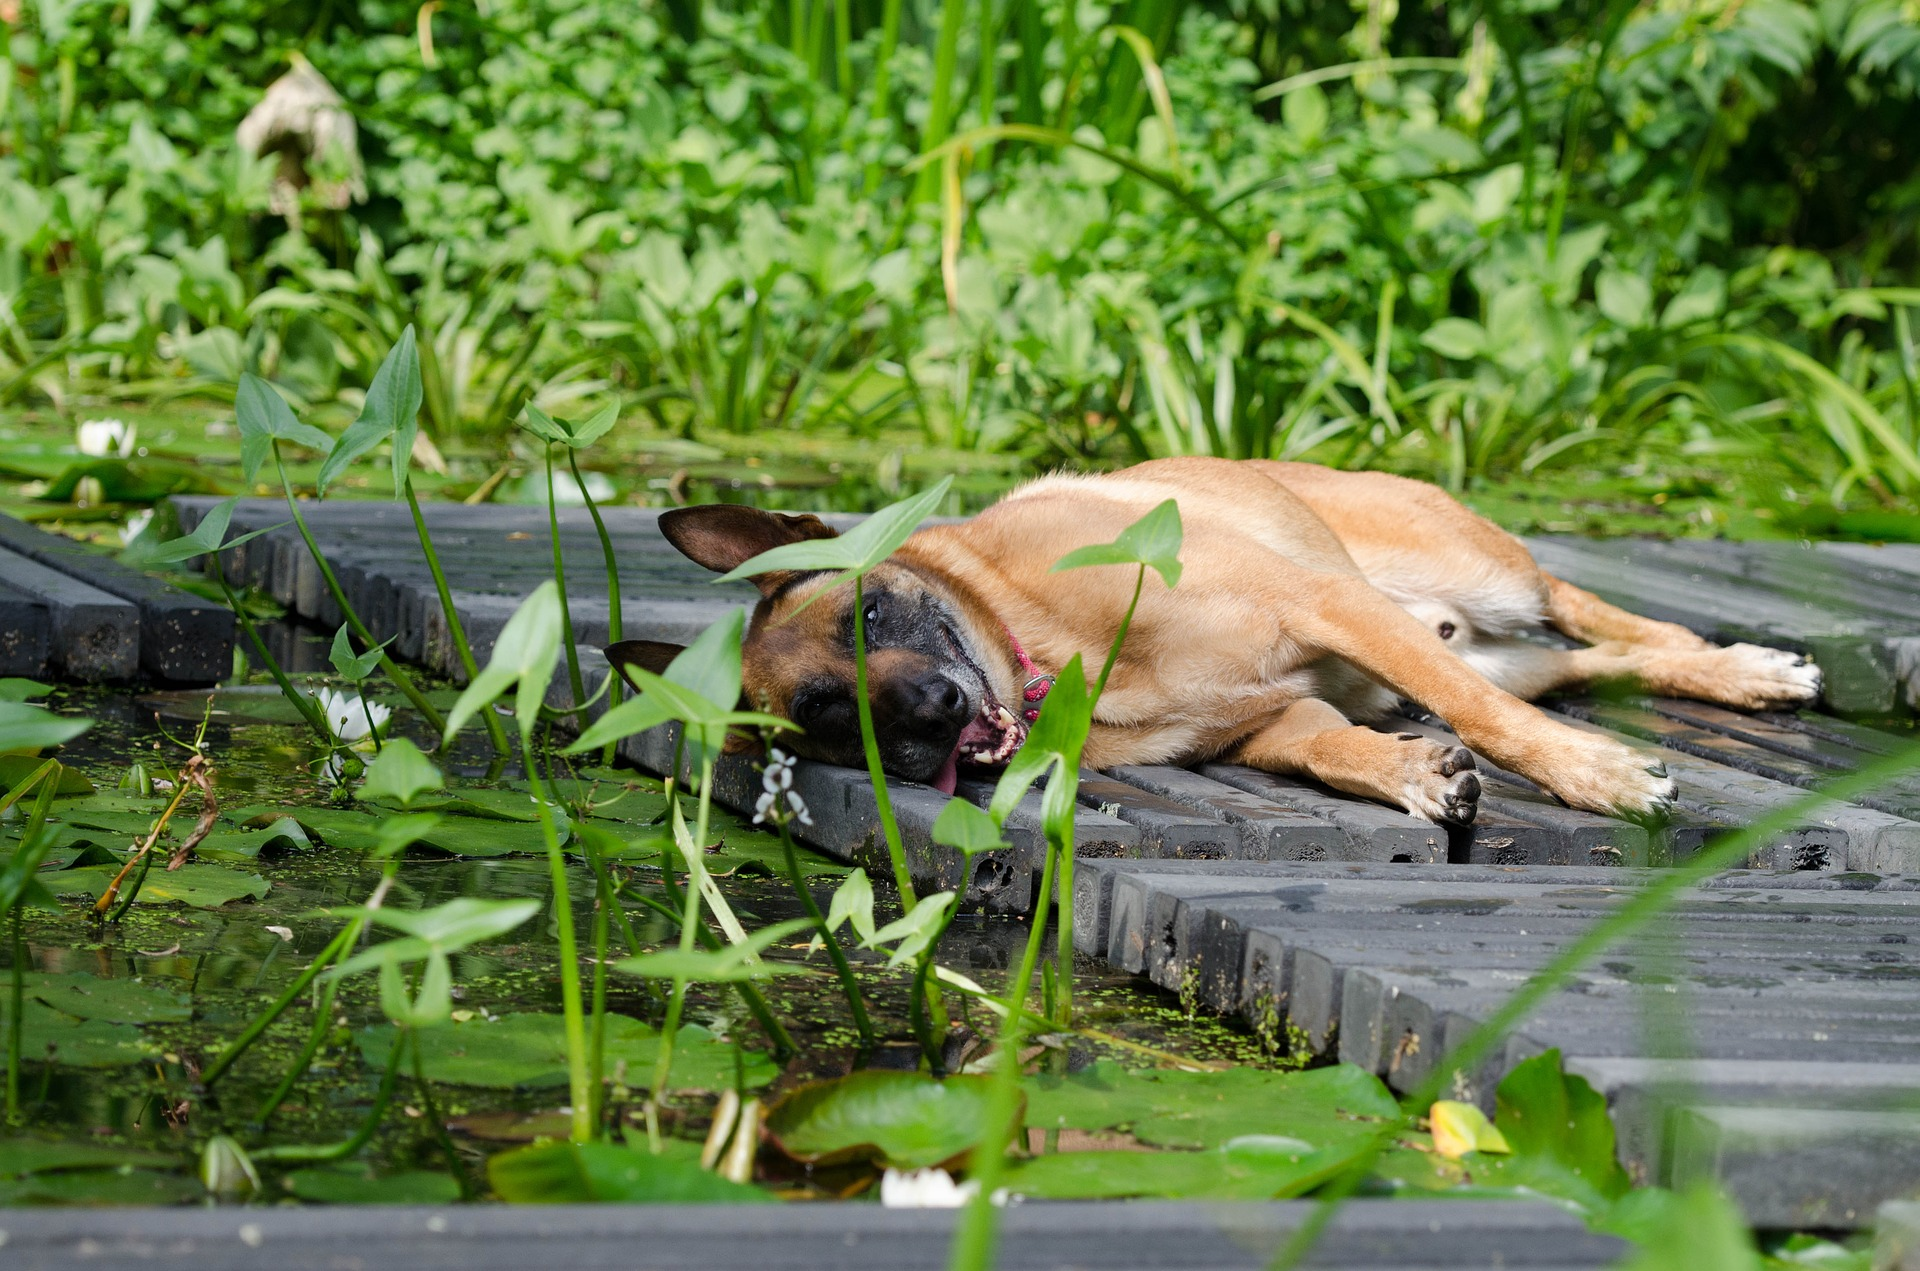 how do dogs stay cool